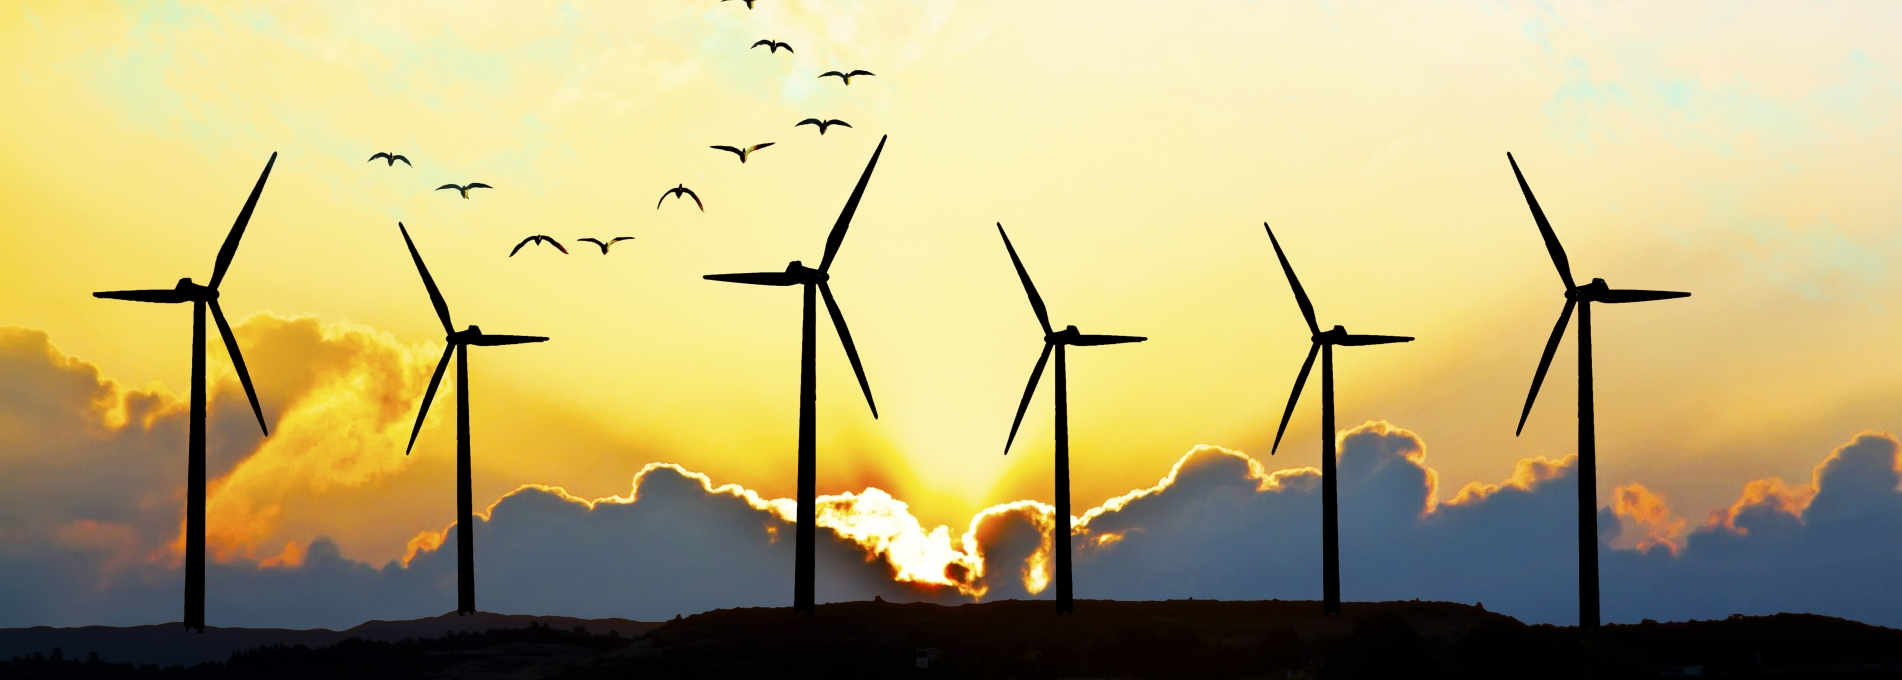 Wind Generators in front of a sunset